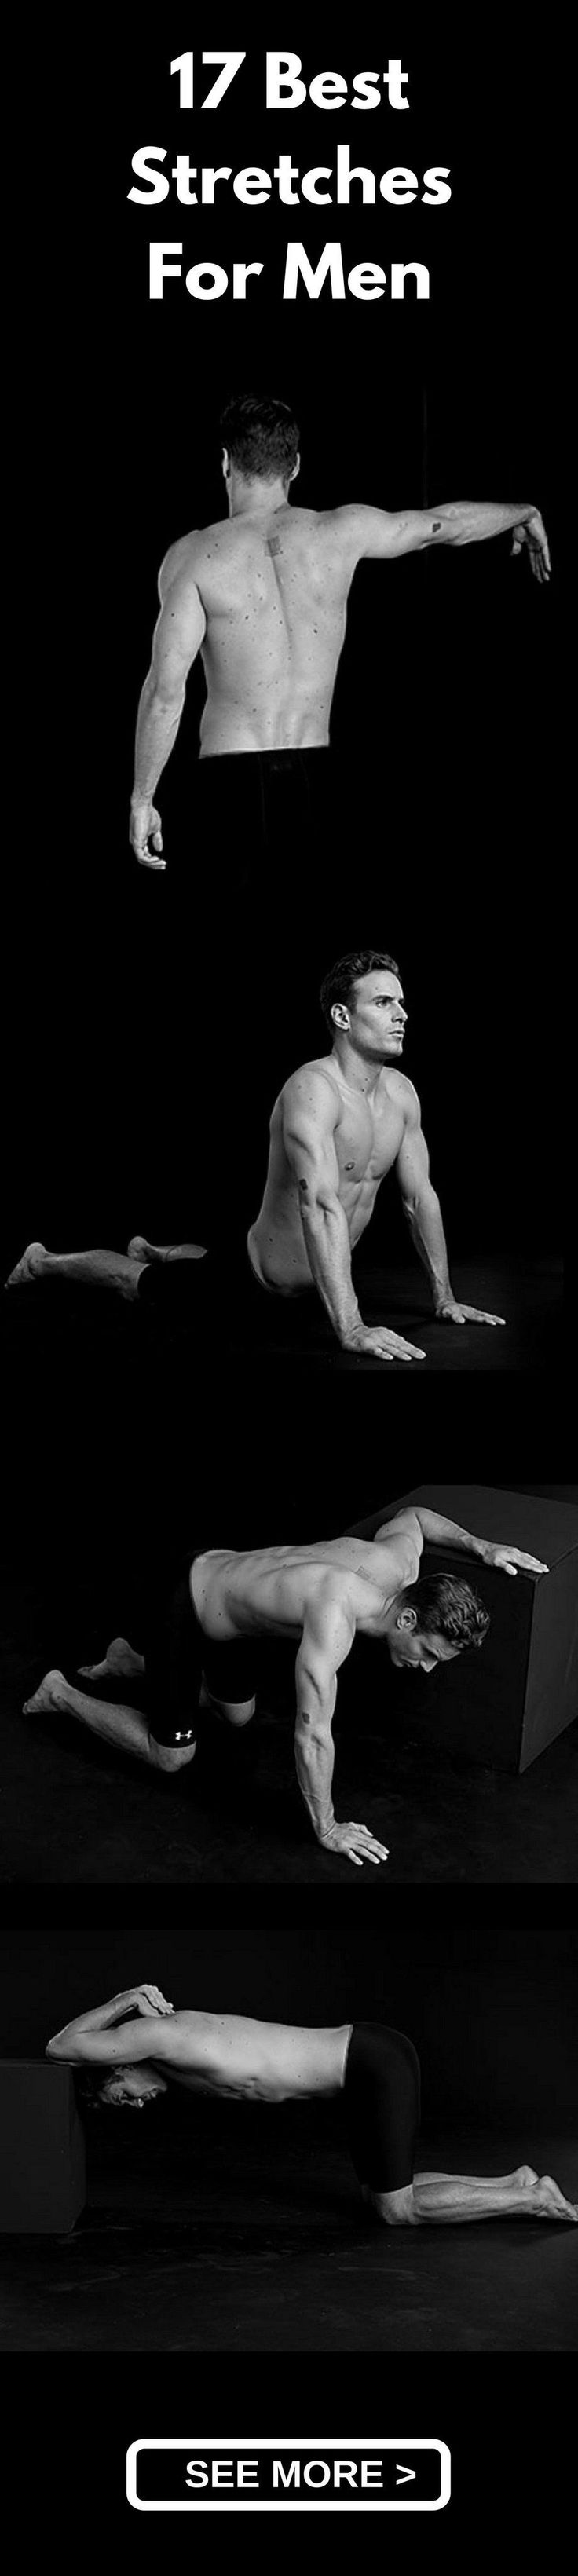 Men's Fitness : 17 Must-Do Stretches For Men